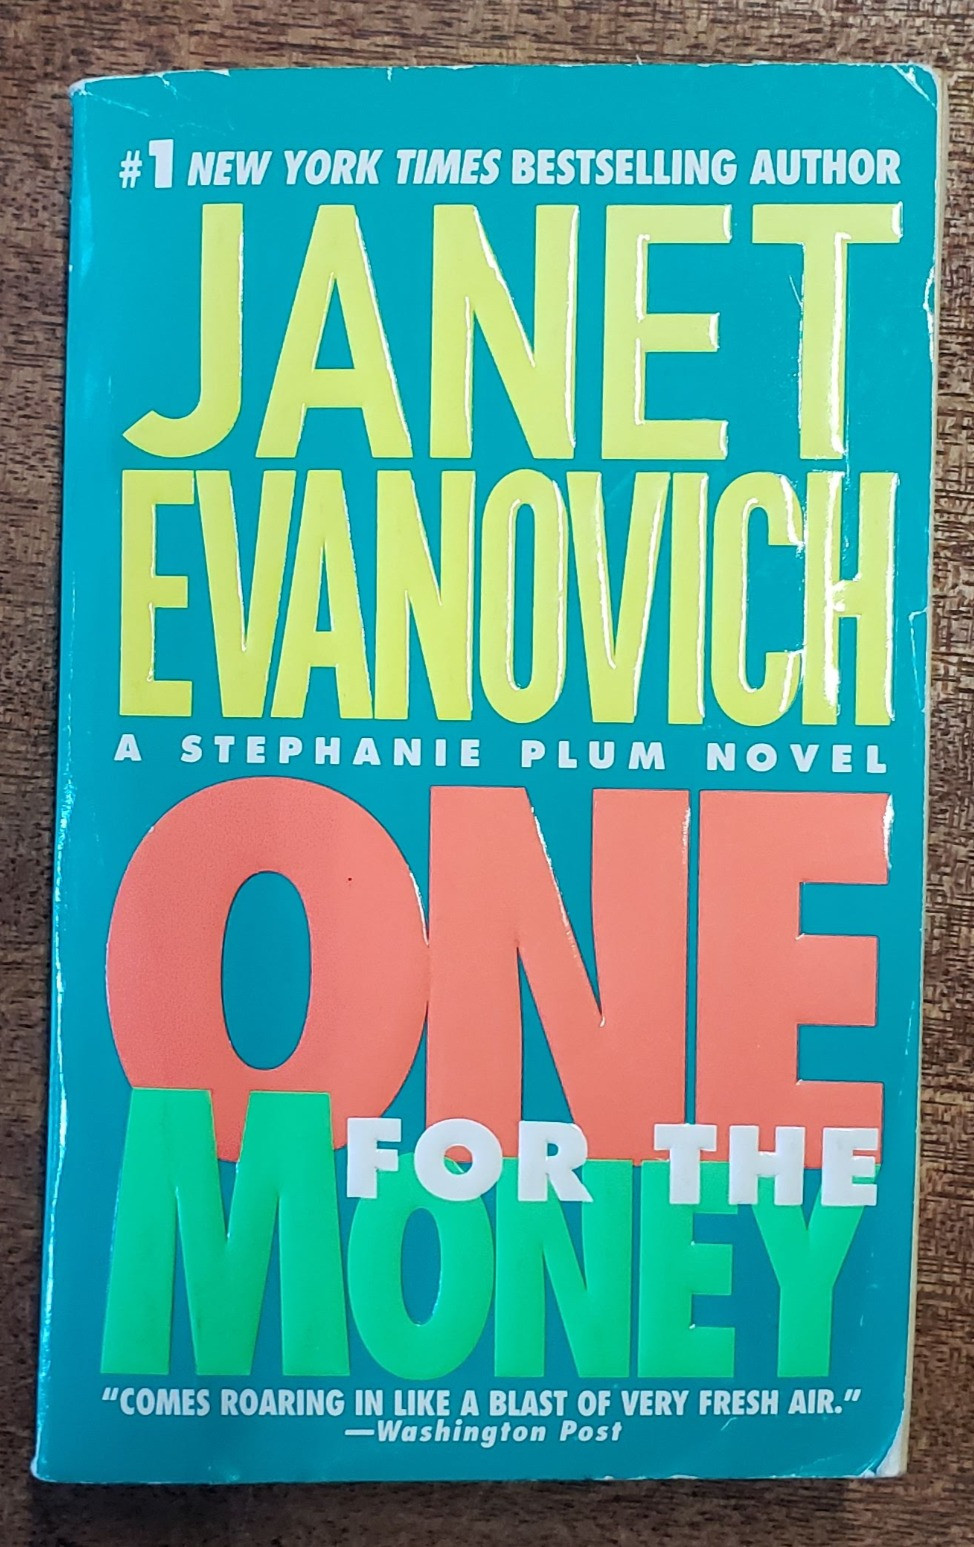 The front facing cover of the book One for the Money by Janet Evanovich.